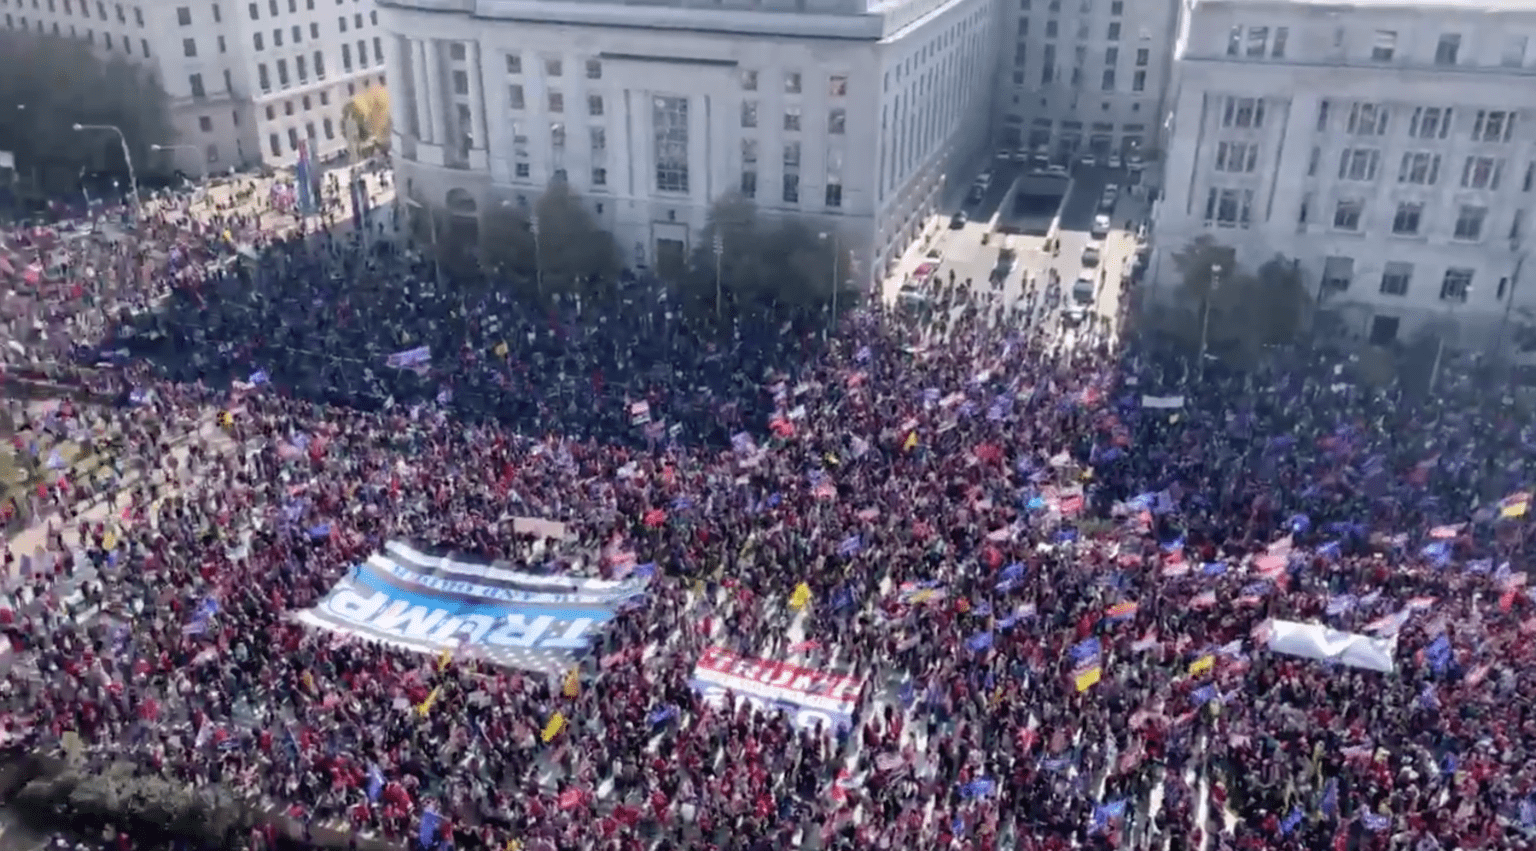 Million MAGA March in DC interrupted by Antifa and Black Lives Matter violence